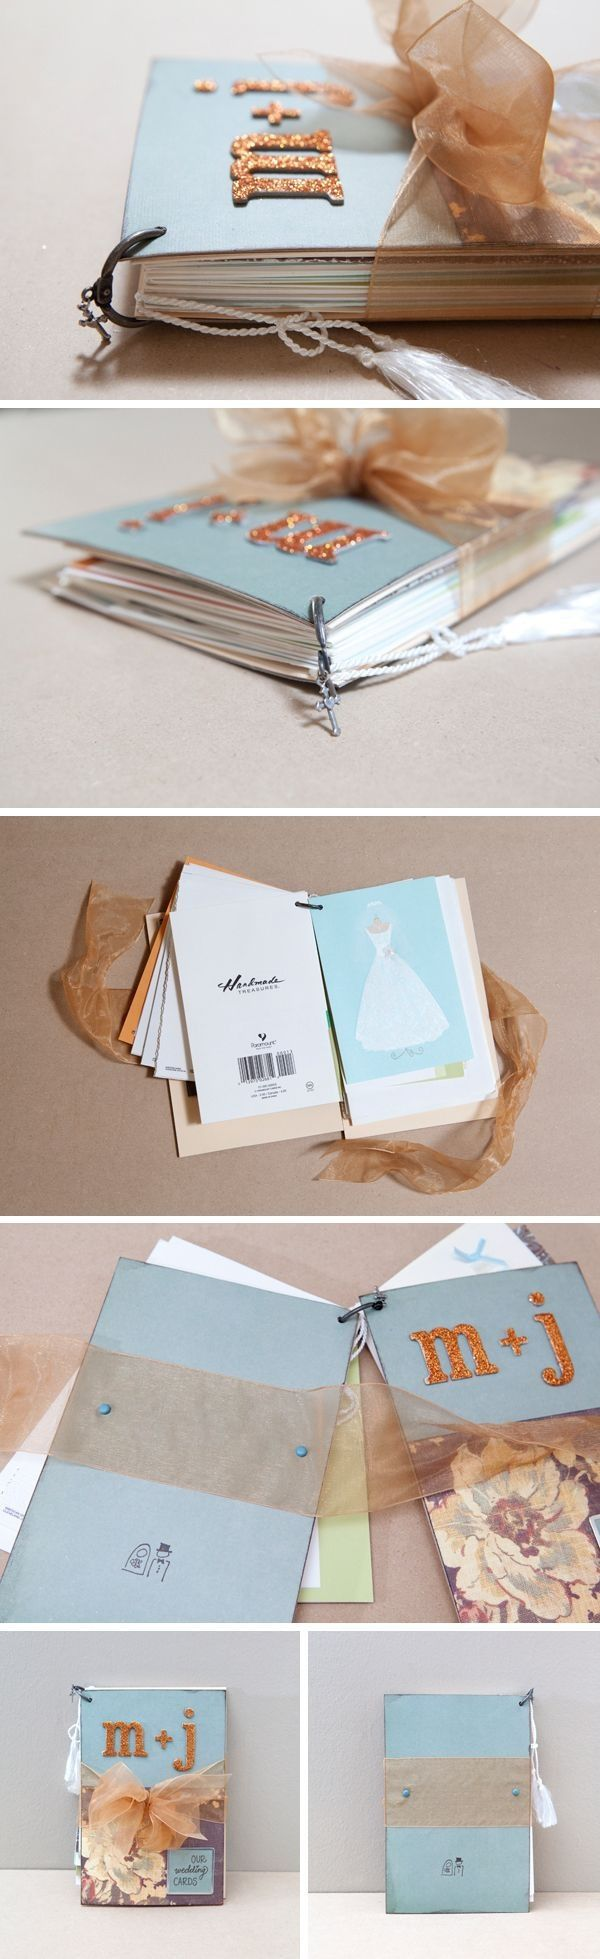 Book of all the wedding cards. Wish I would've thought of this! :(